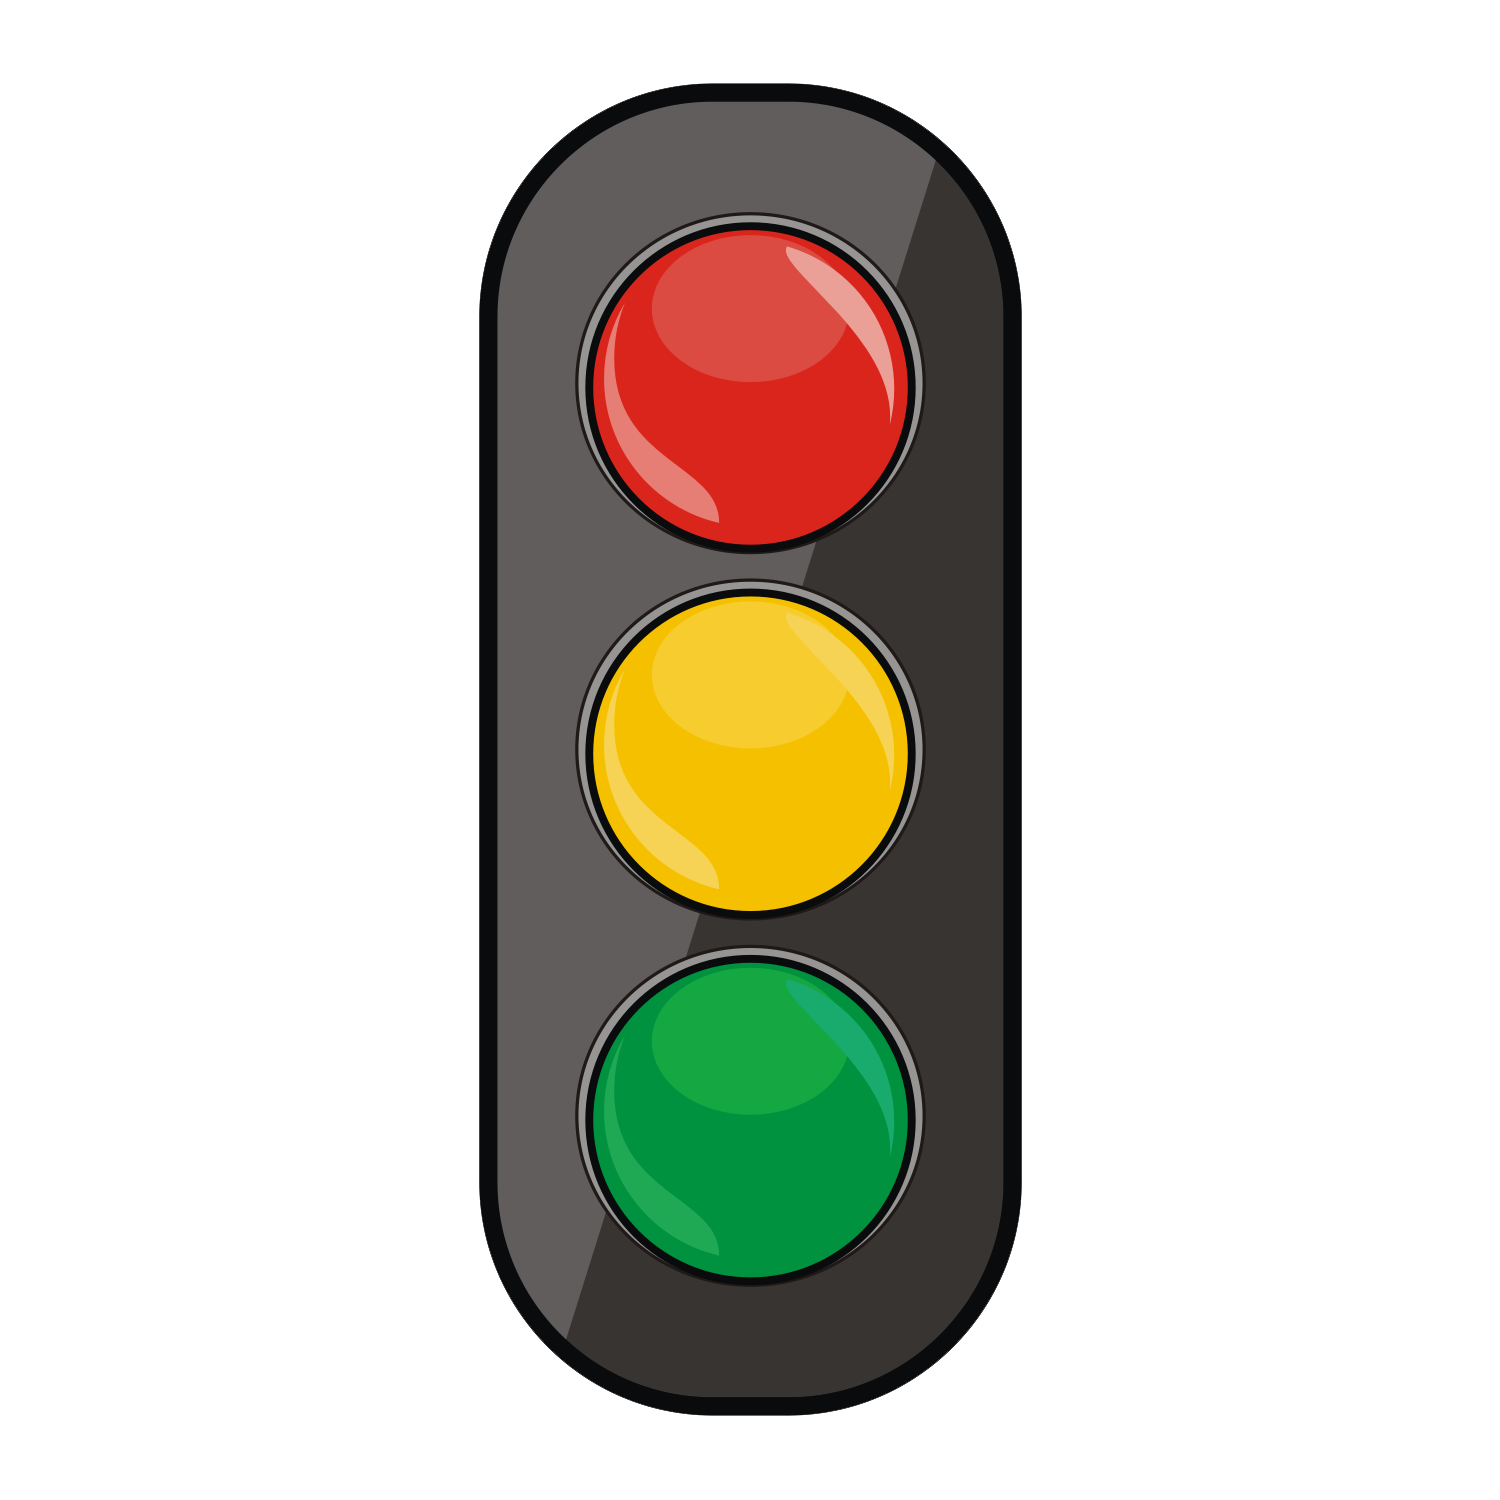 Download PNG image - Traffic Light Png Hd - Stop PNG HD